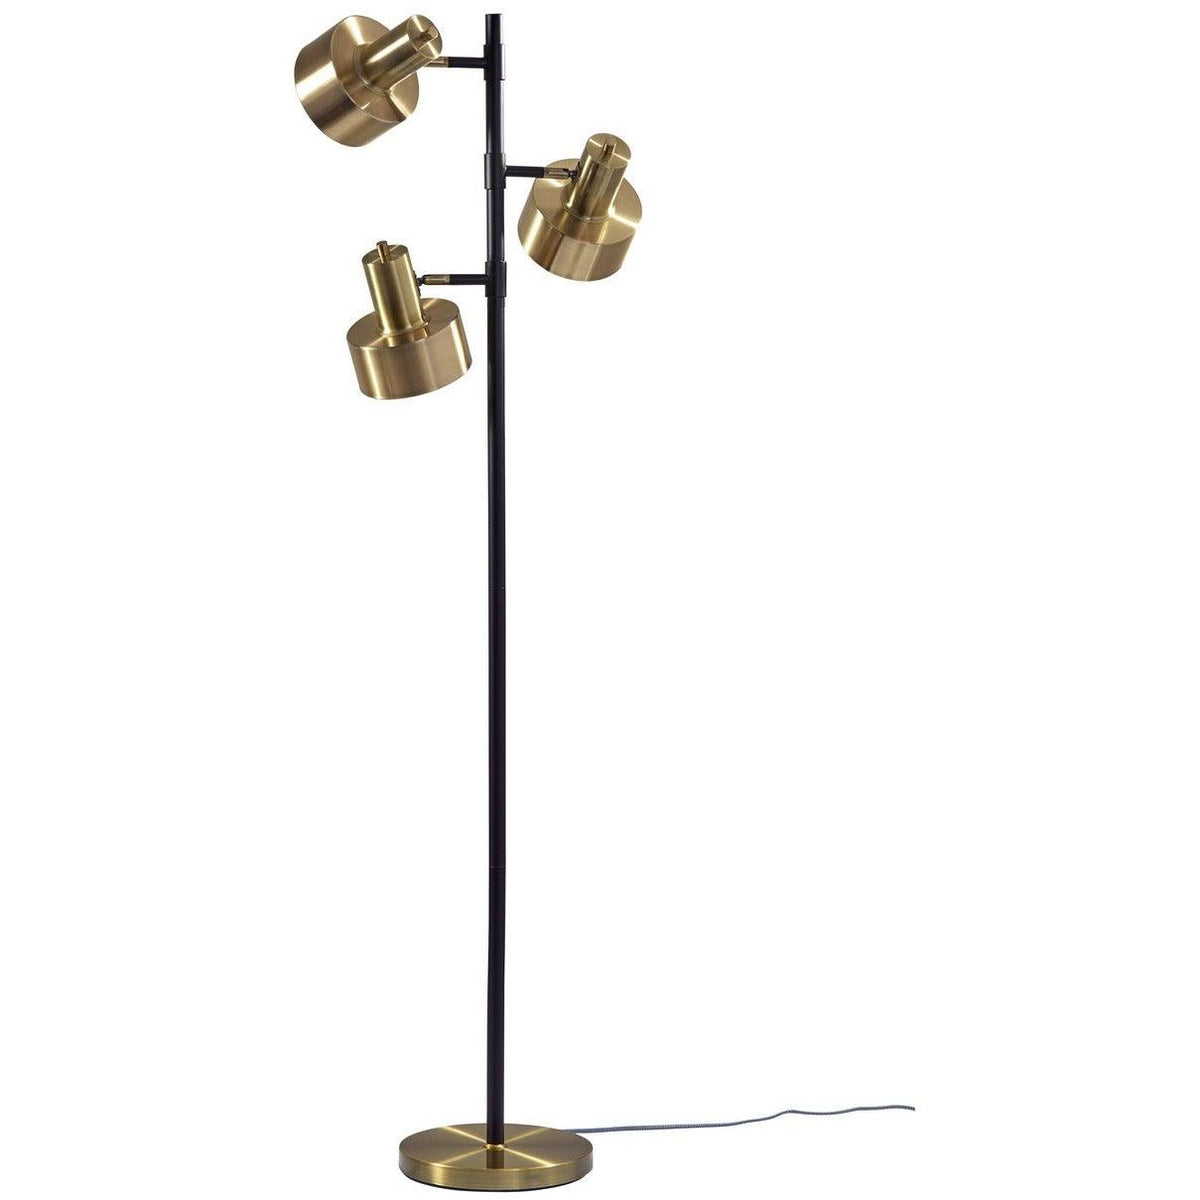 Adesso Home - 3588-01 - Three Light Floor Lamp - Clayton - Matte Black/Antique Brass